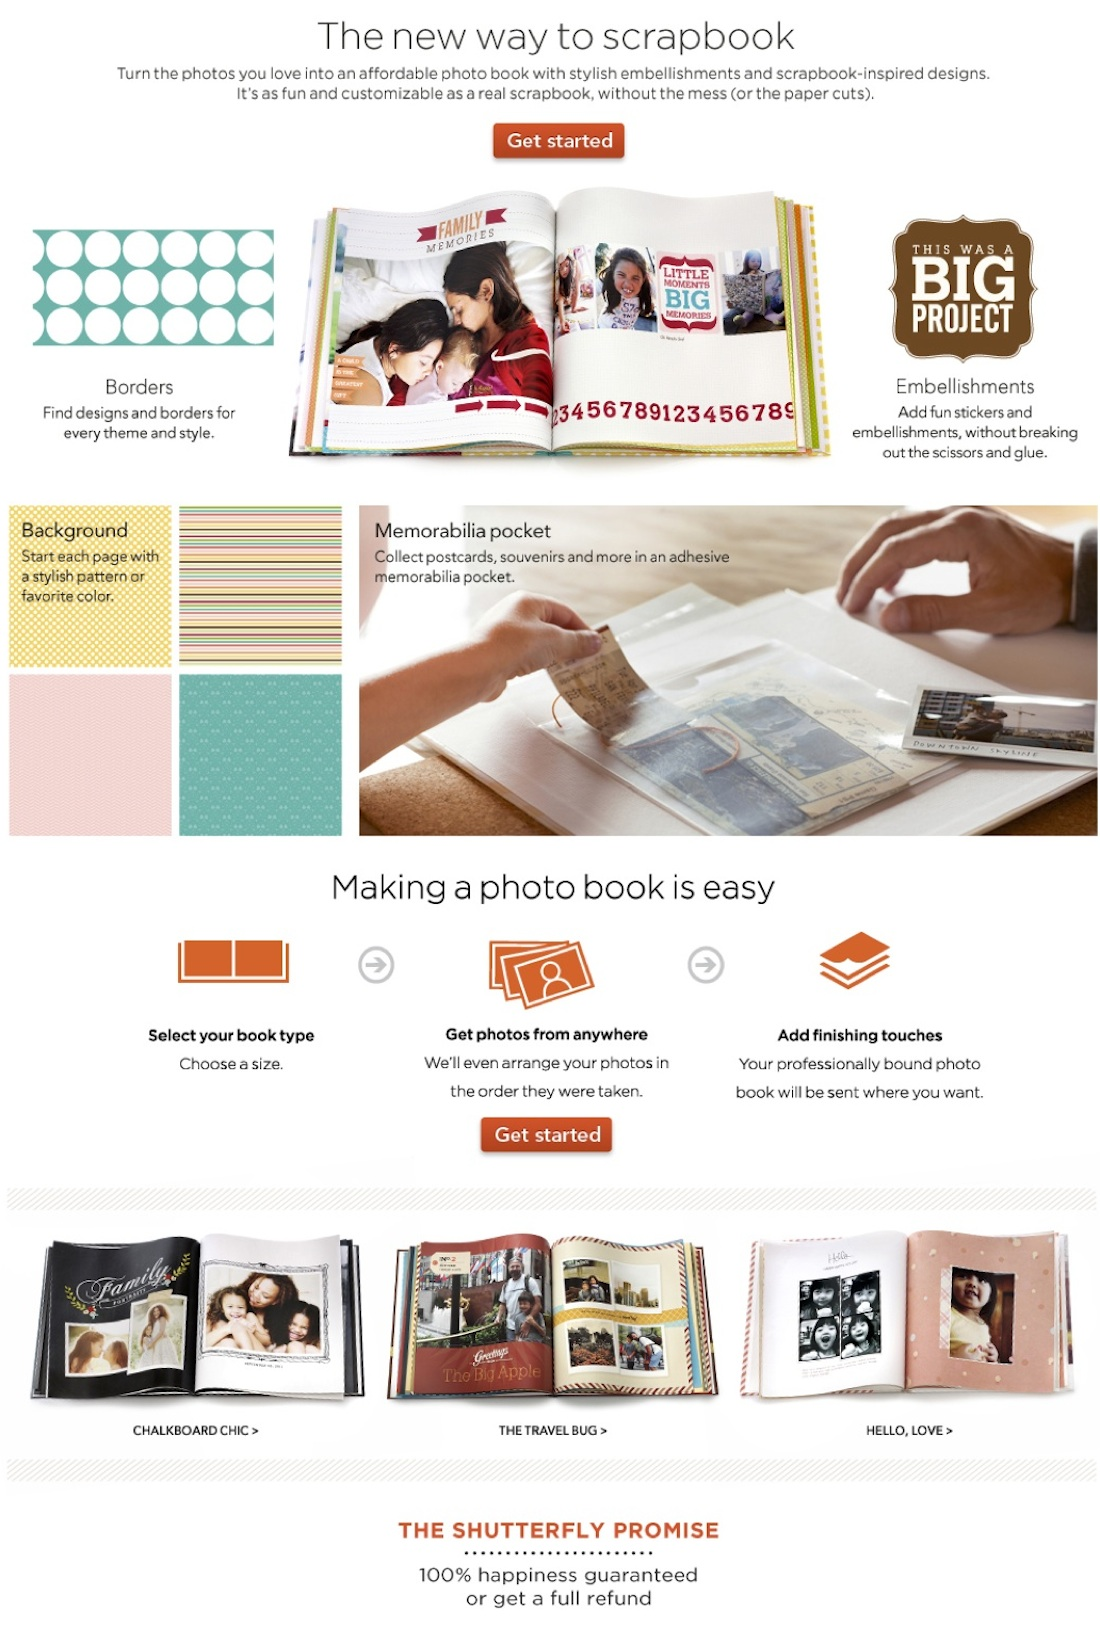 Retail-copywriting-landing-page-scrabook-full